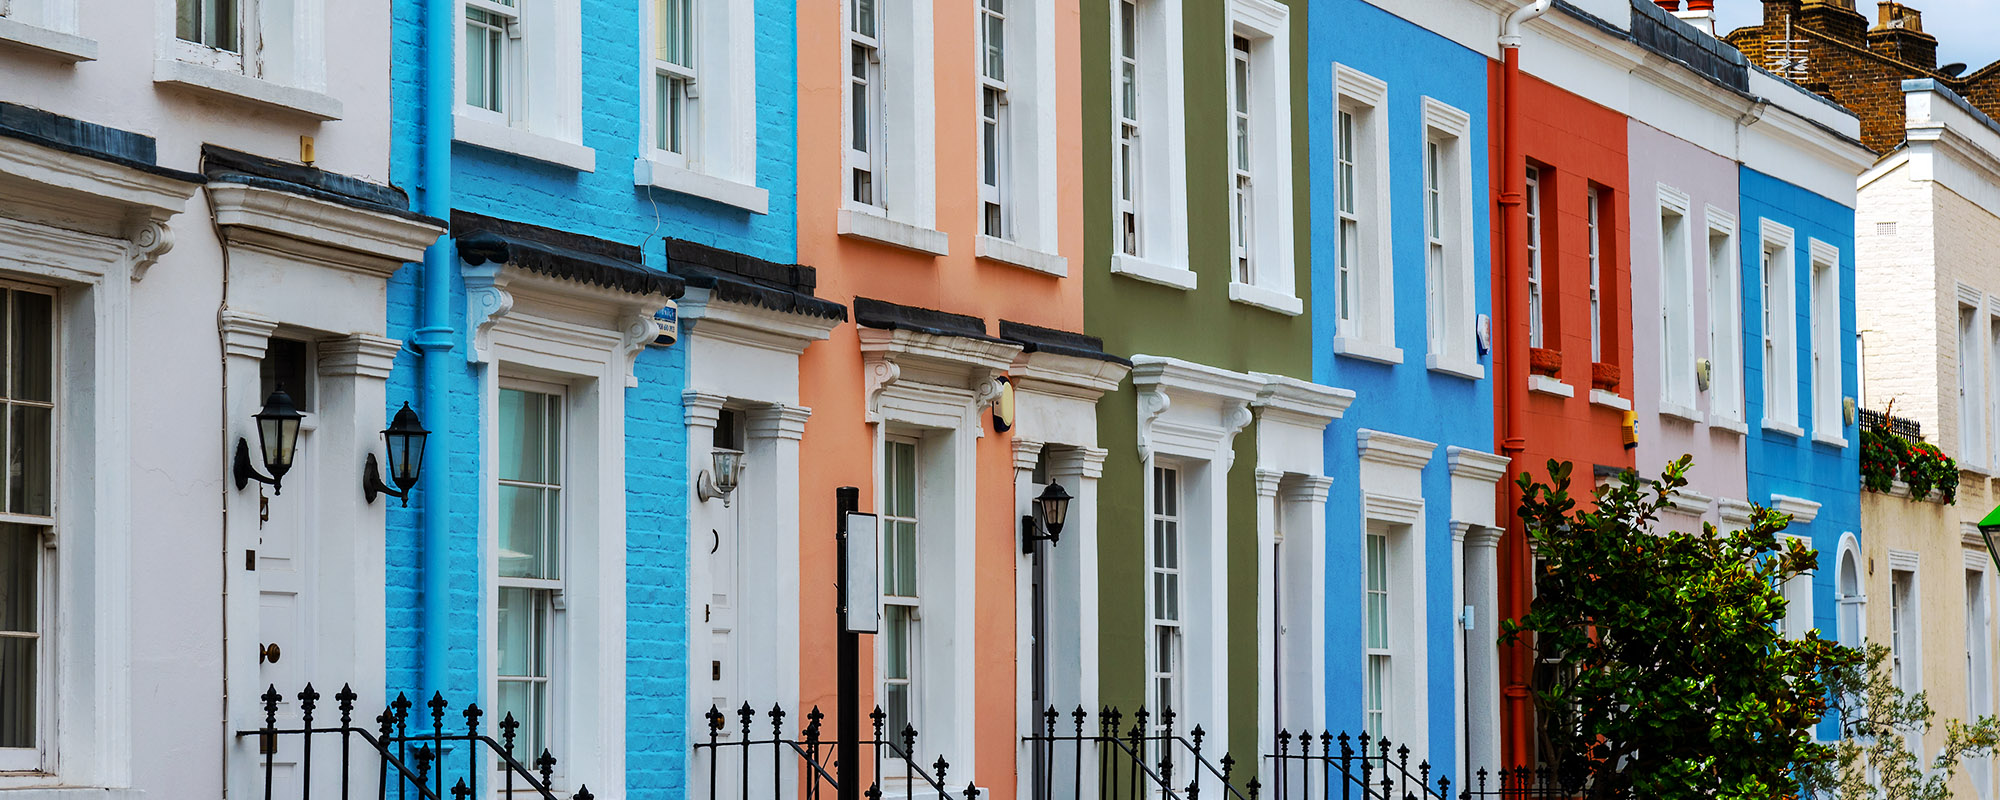 Coloured town houses